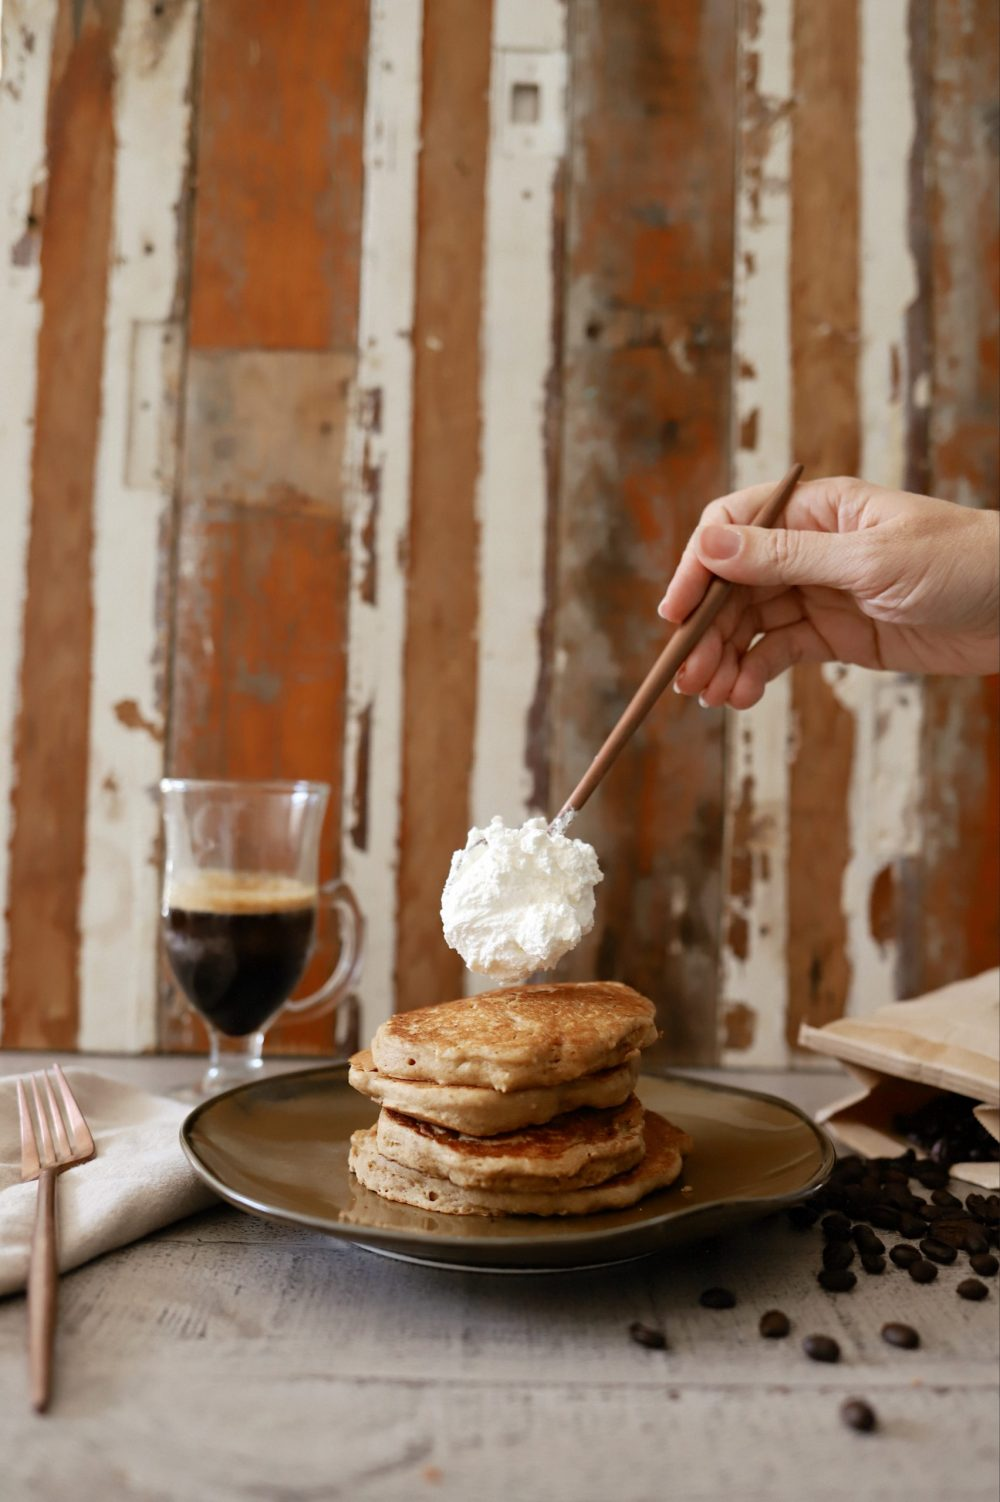 Mouthwatering Coffee Pancakes With Espresso and Vanilla Cream Whip | Coffee Pancakes by popular Florida lifestyle blog, Fresh Mommy Blog: image of whipped cream being placed on top of some stacked coffee pancakes.